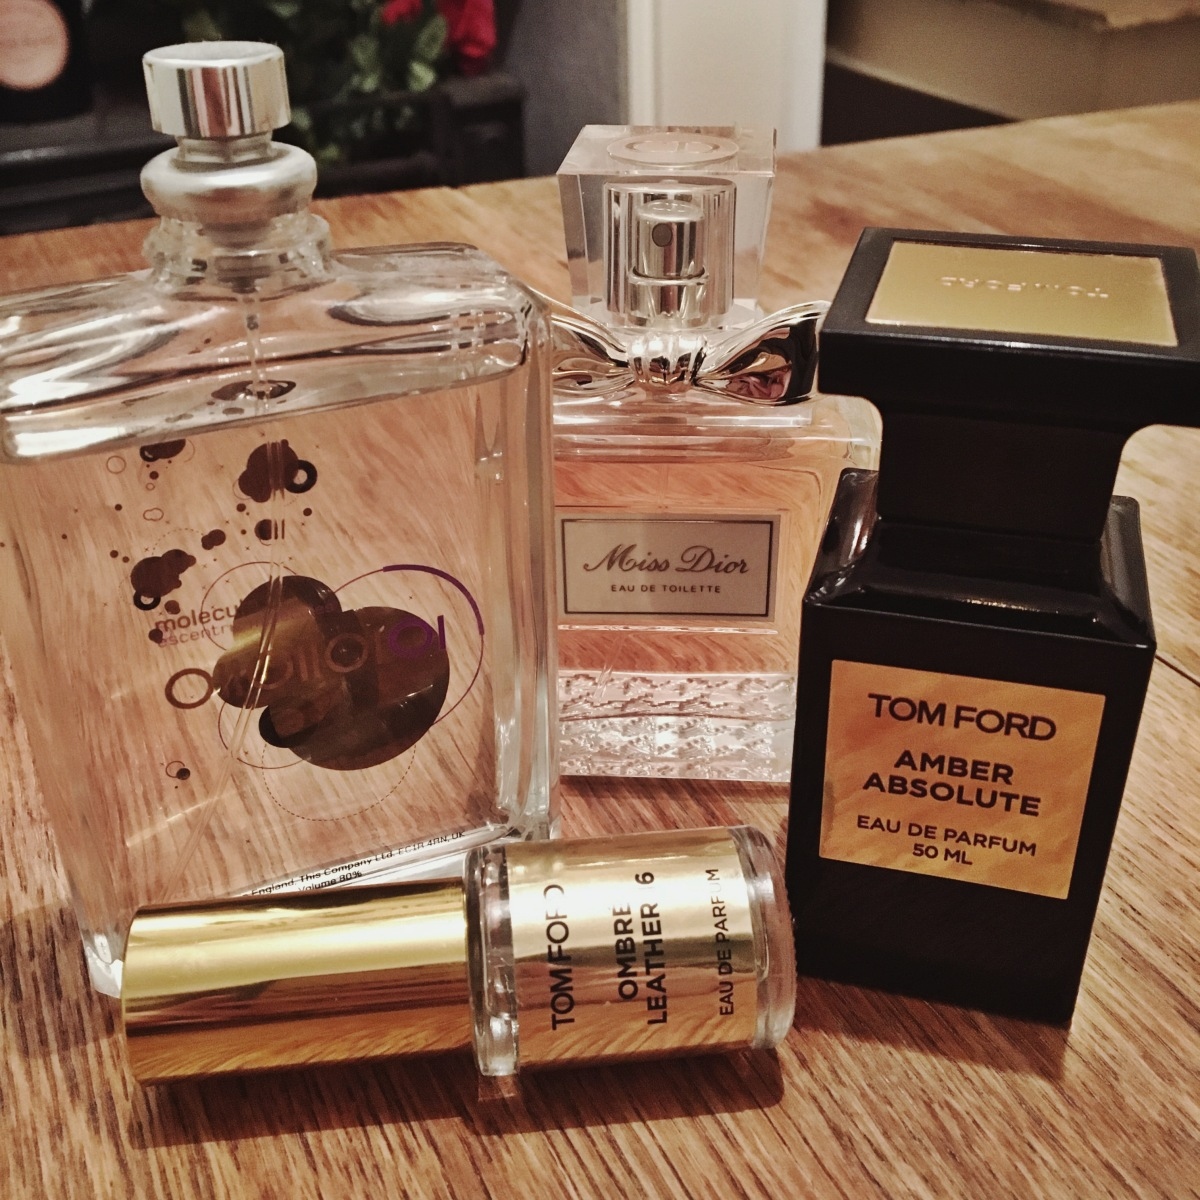 National Fragrance Day #ScentMemories